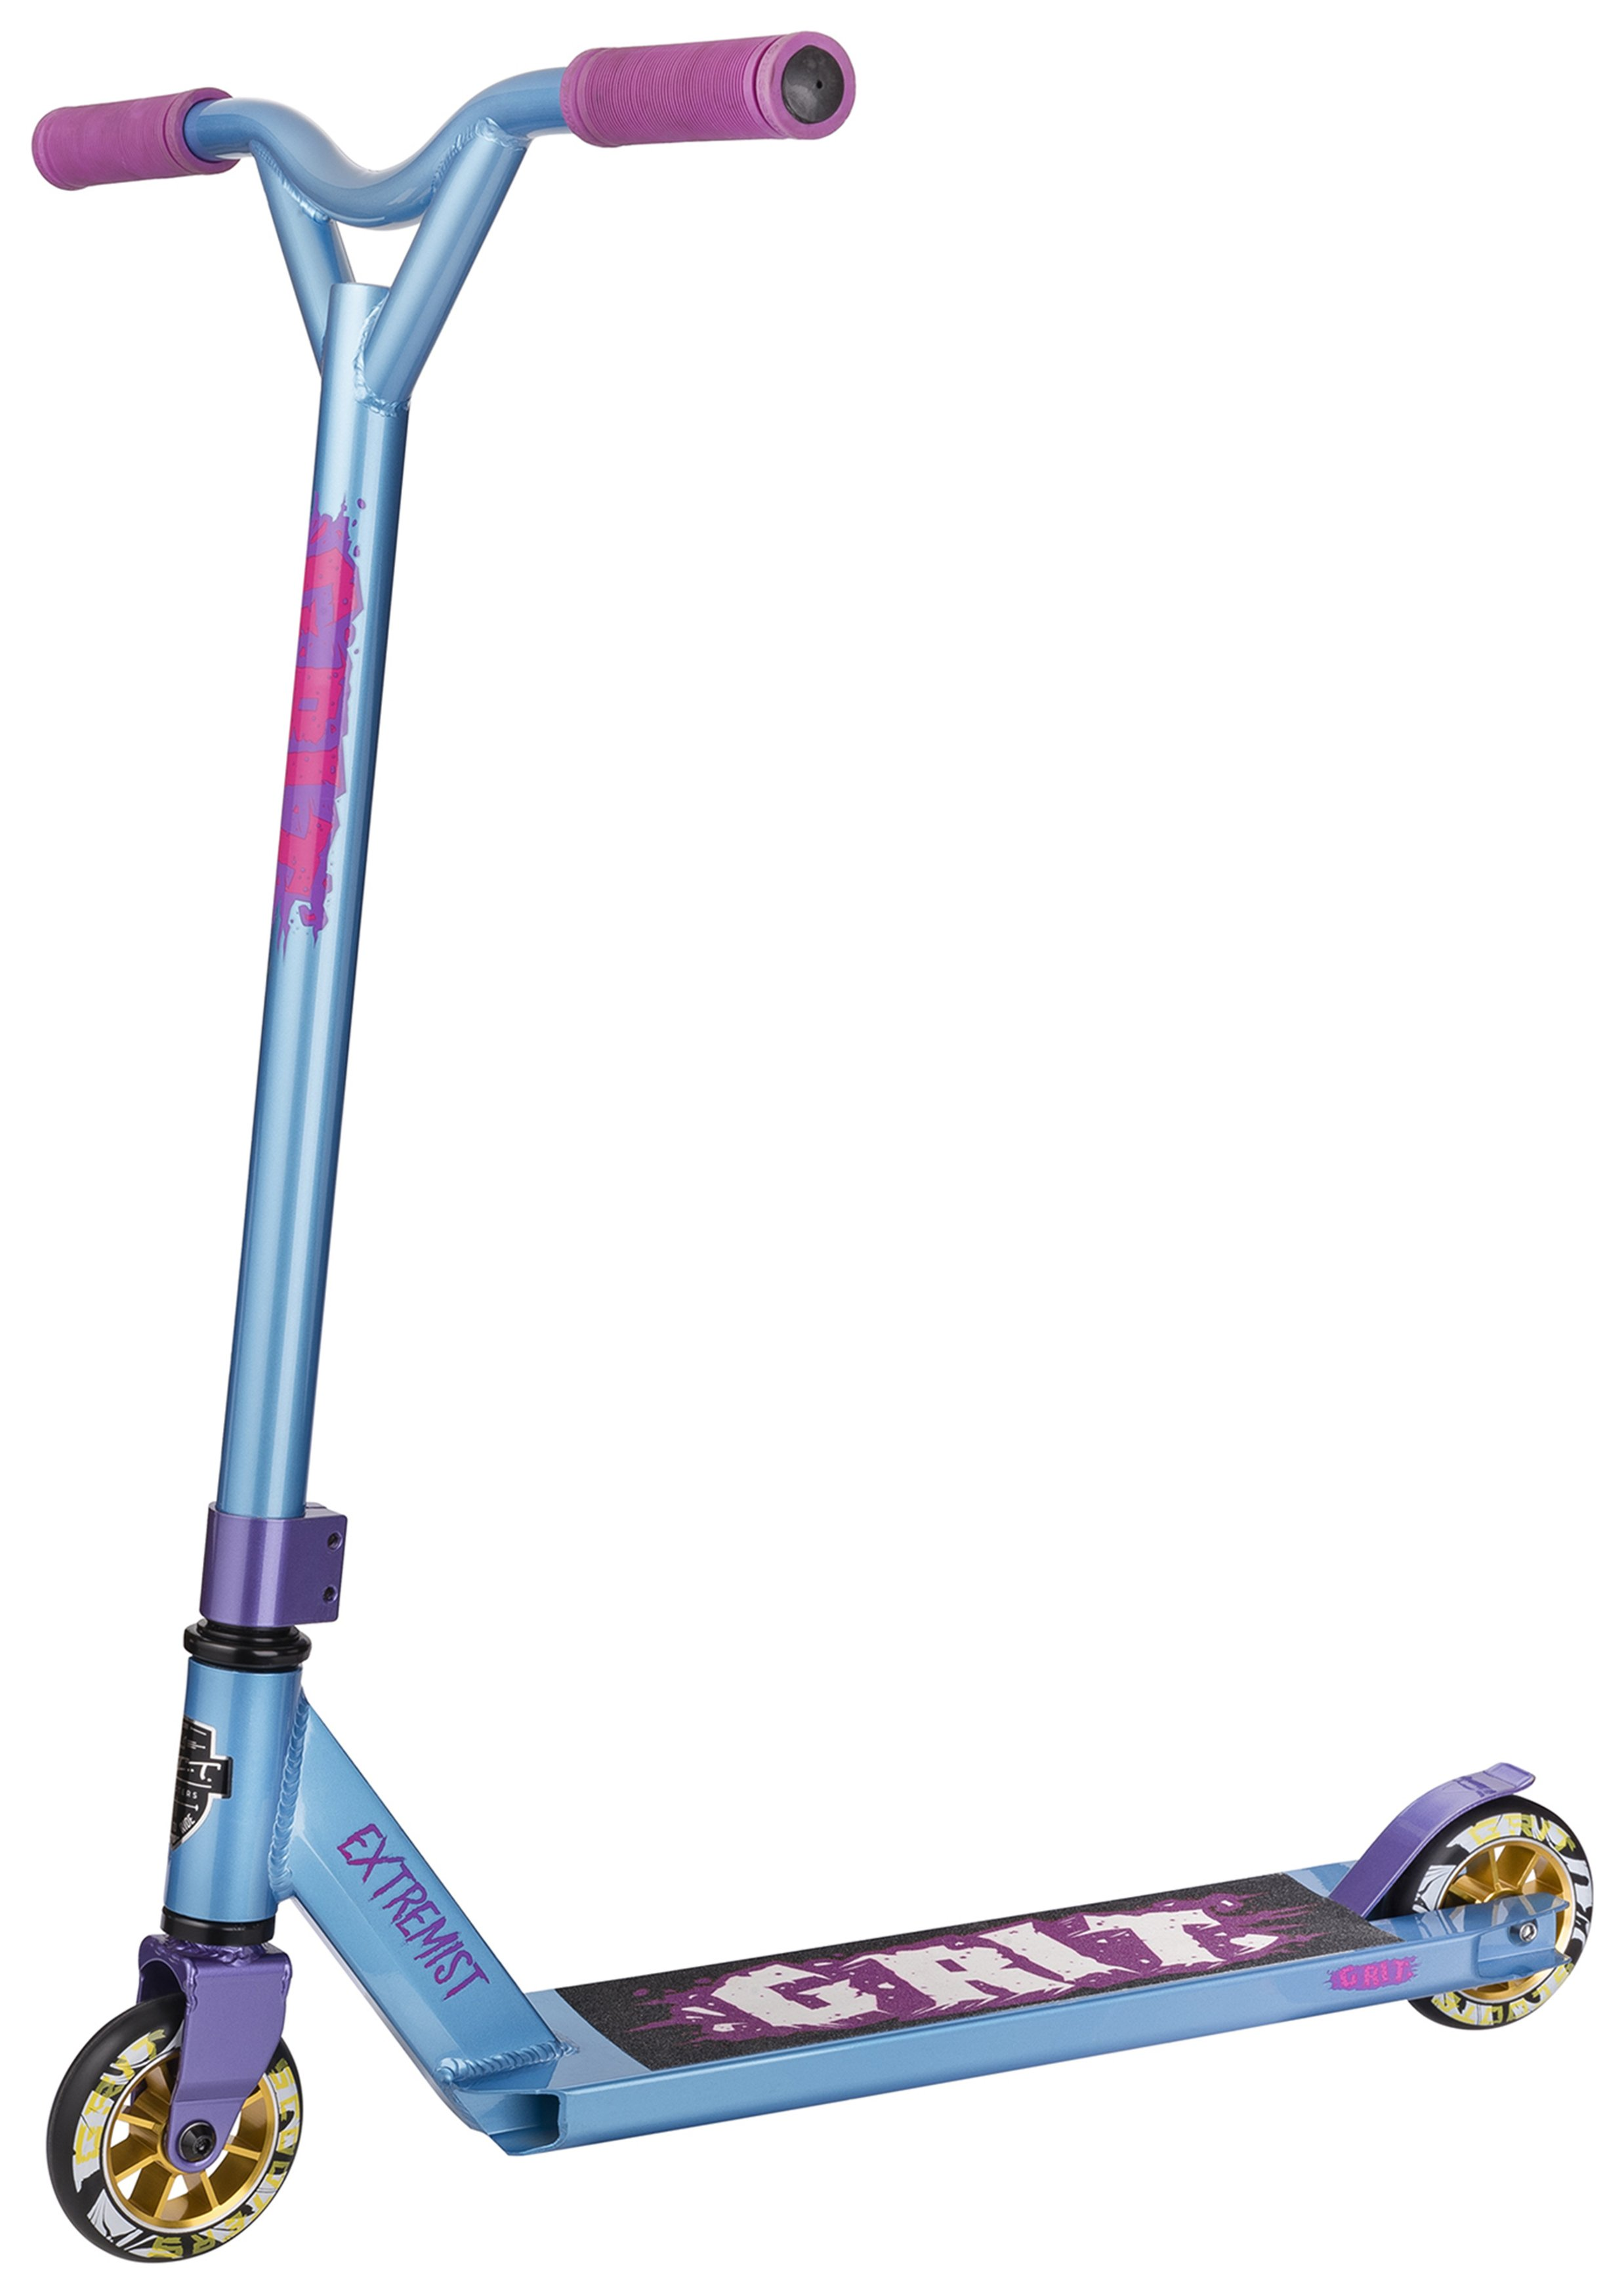 Image of Grit Extremist Scooter - Iced Blue